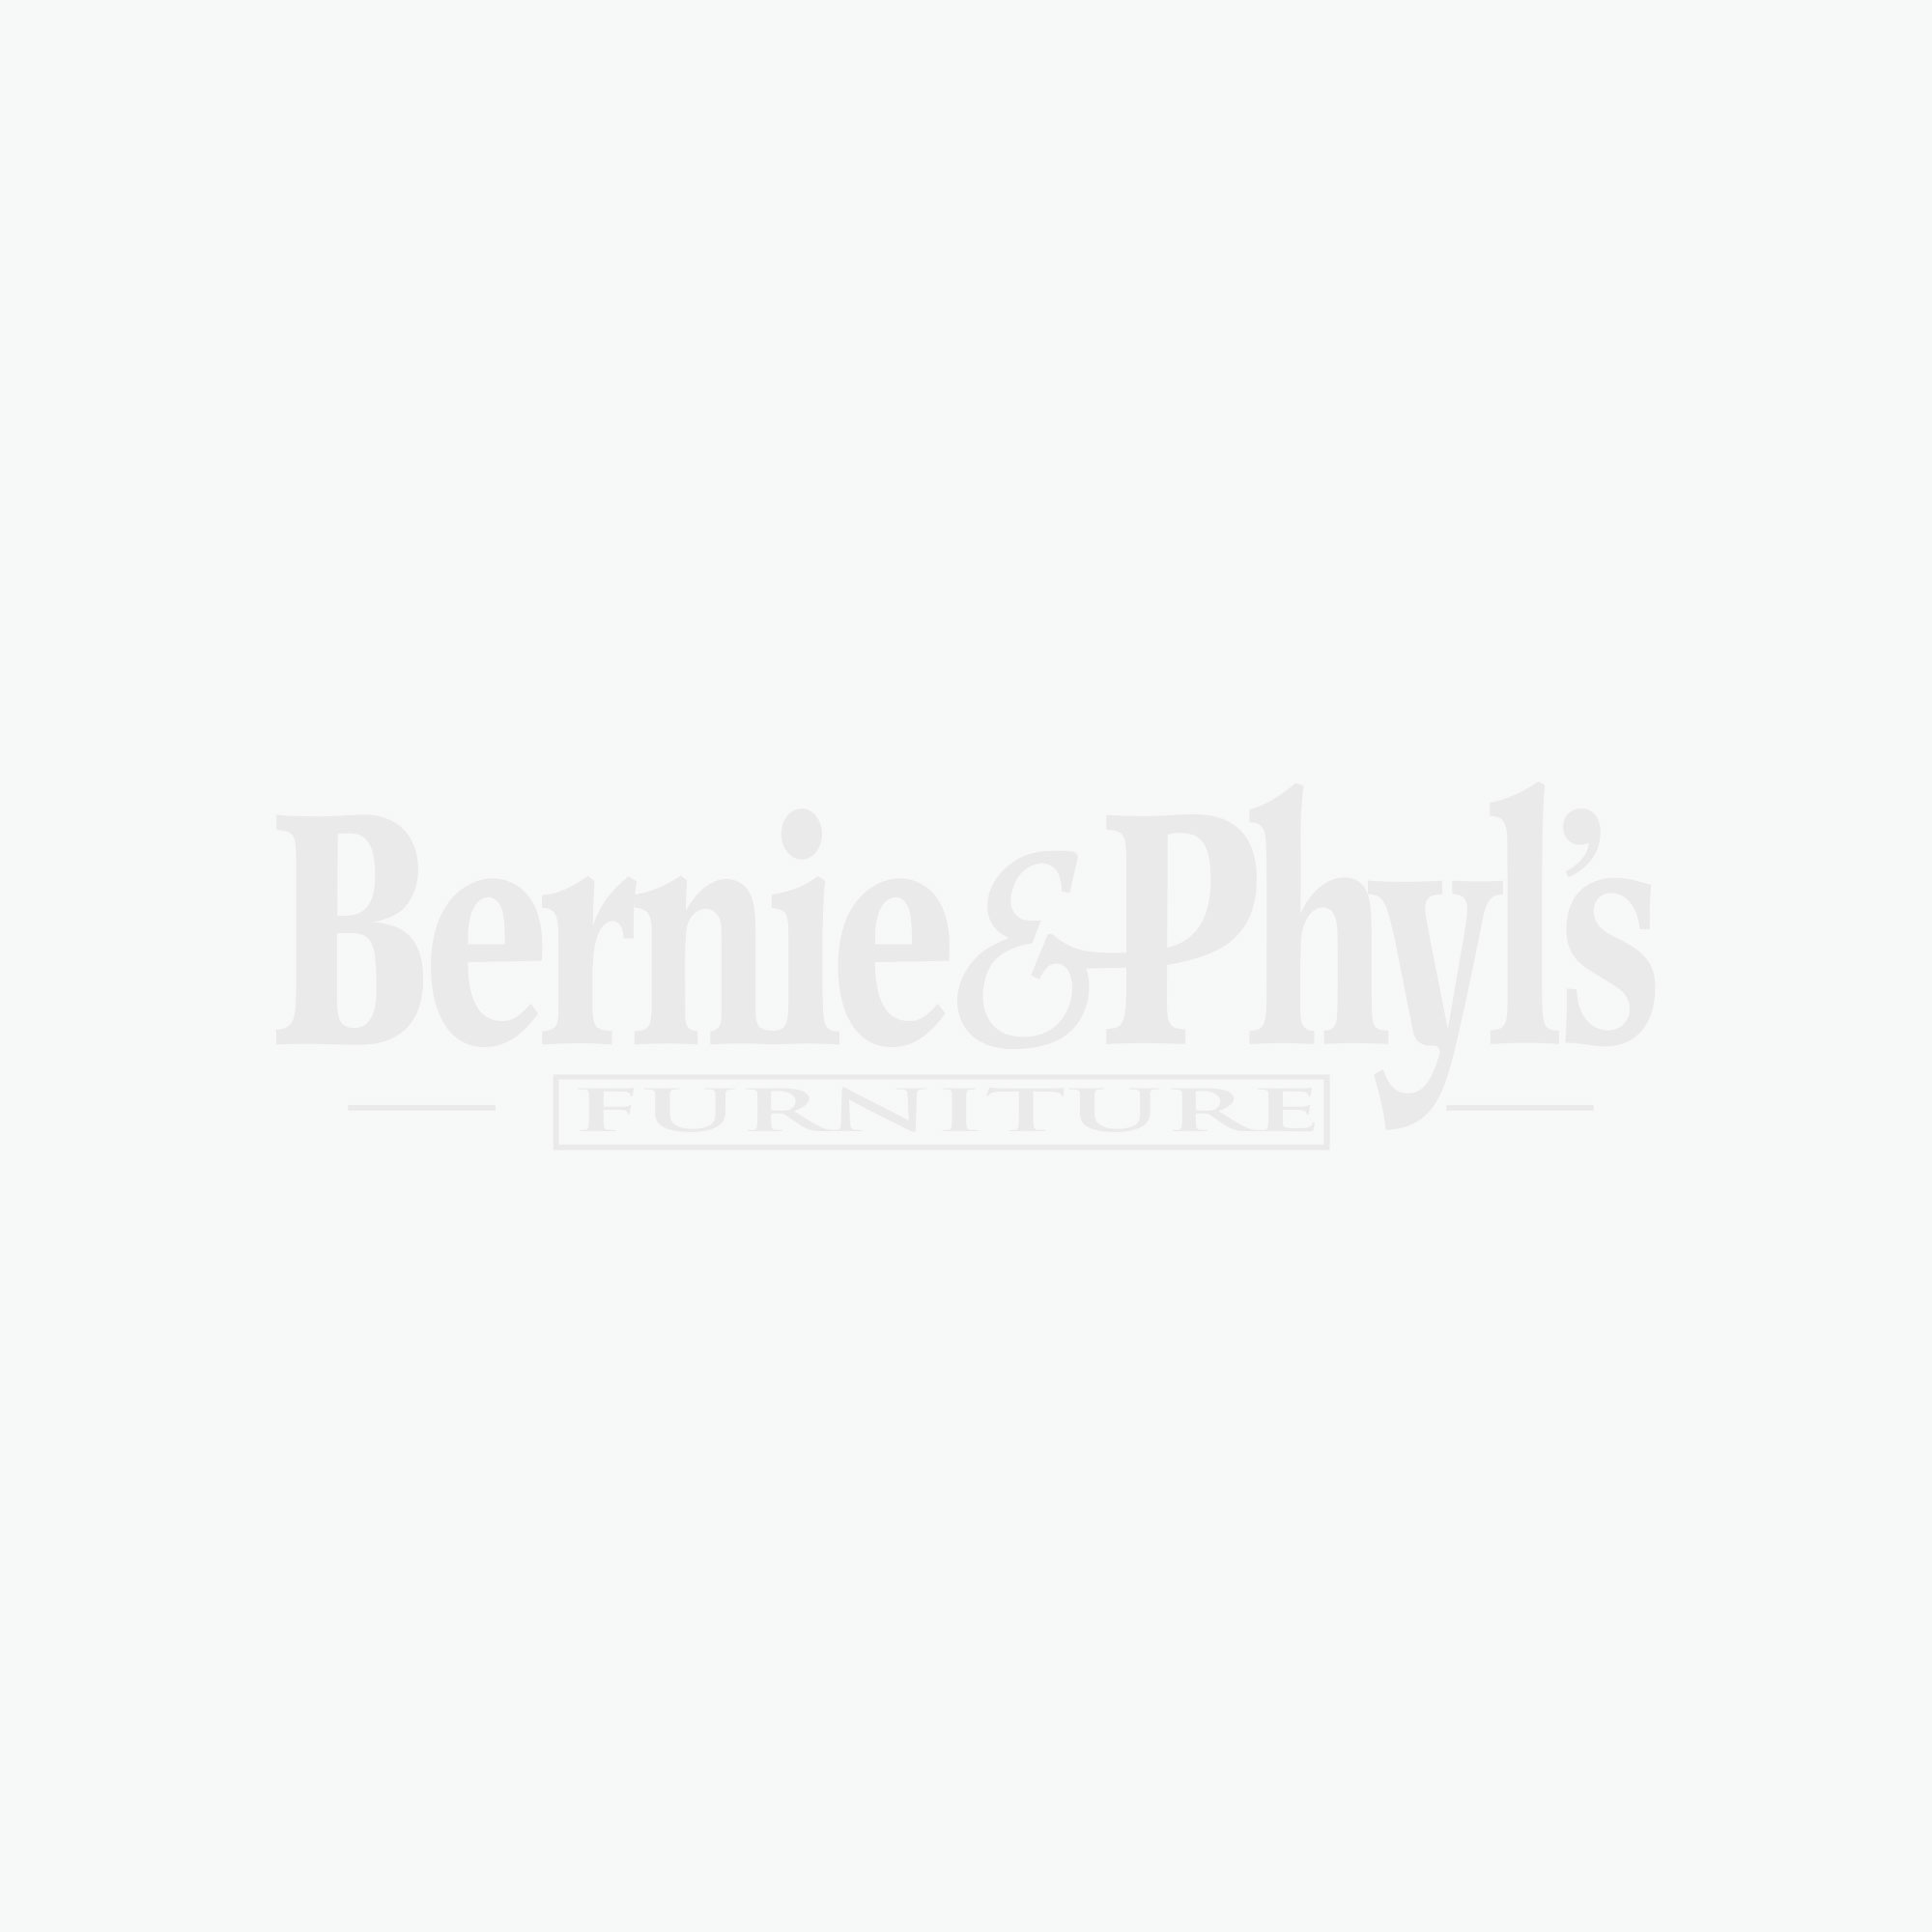 Store Hours Ashley Furniture: Tyler Creek Rectangular Dining Table